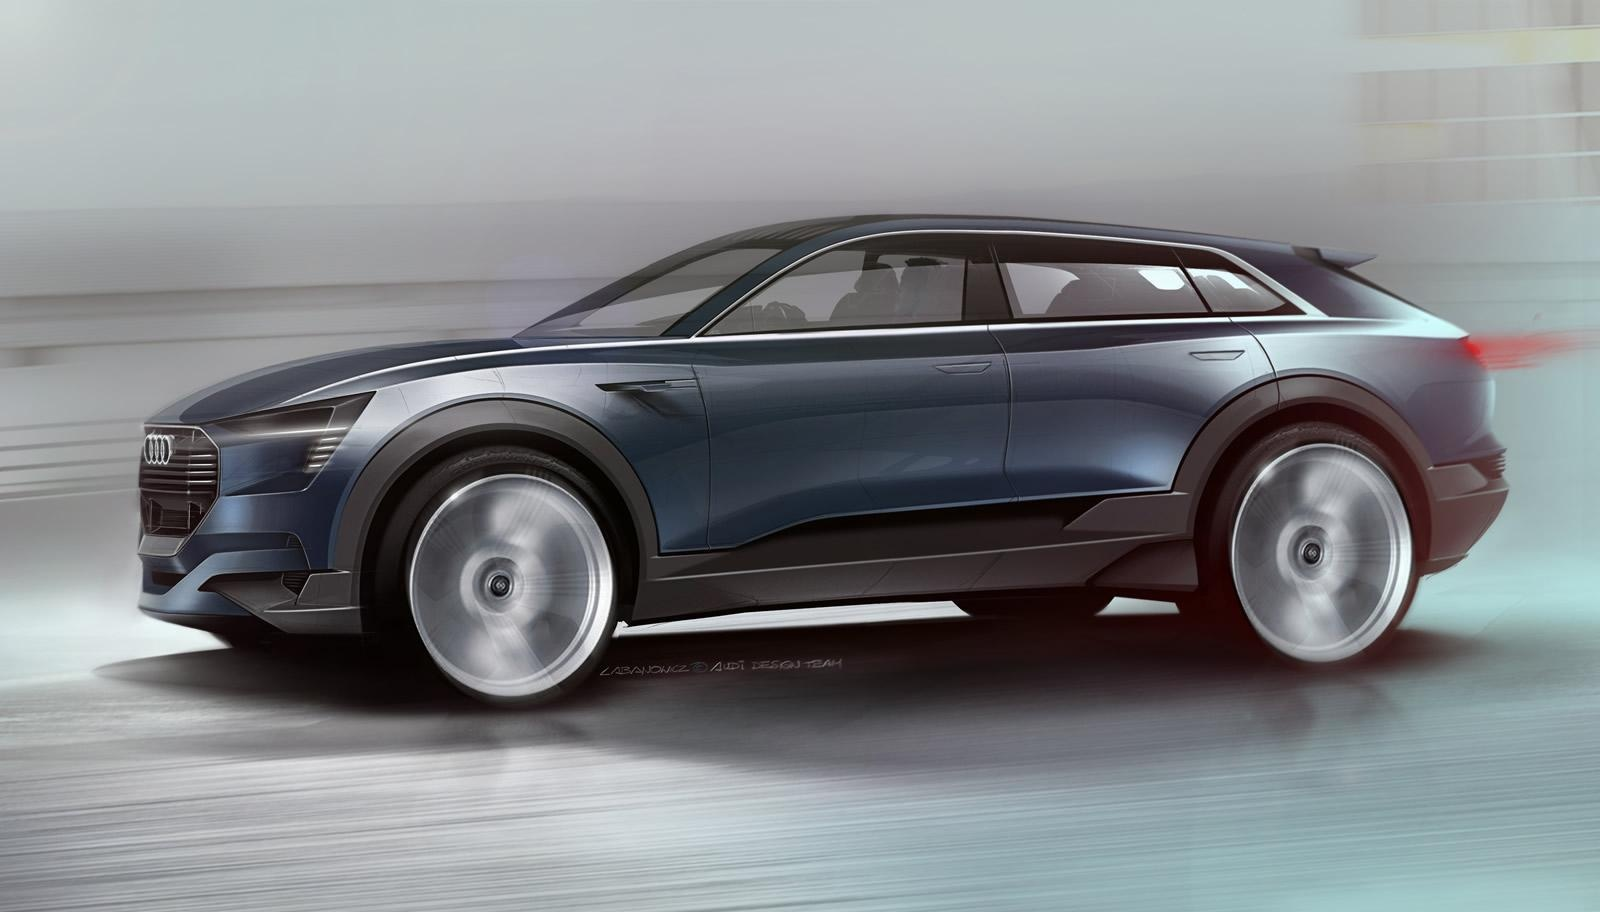 audi-e-tron-quattro-concept-teaser-shows-future-q6-electric-suv-for-the-first-time_3